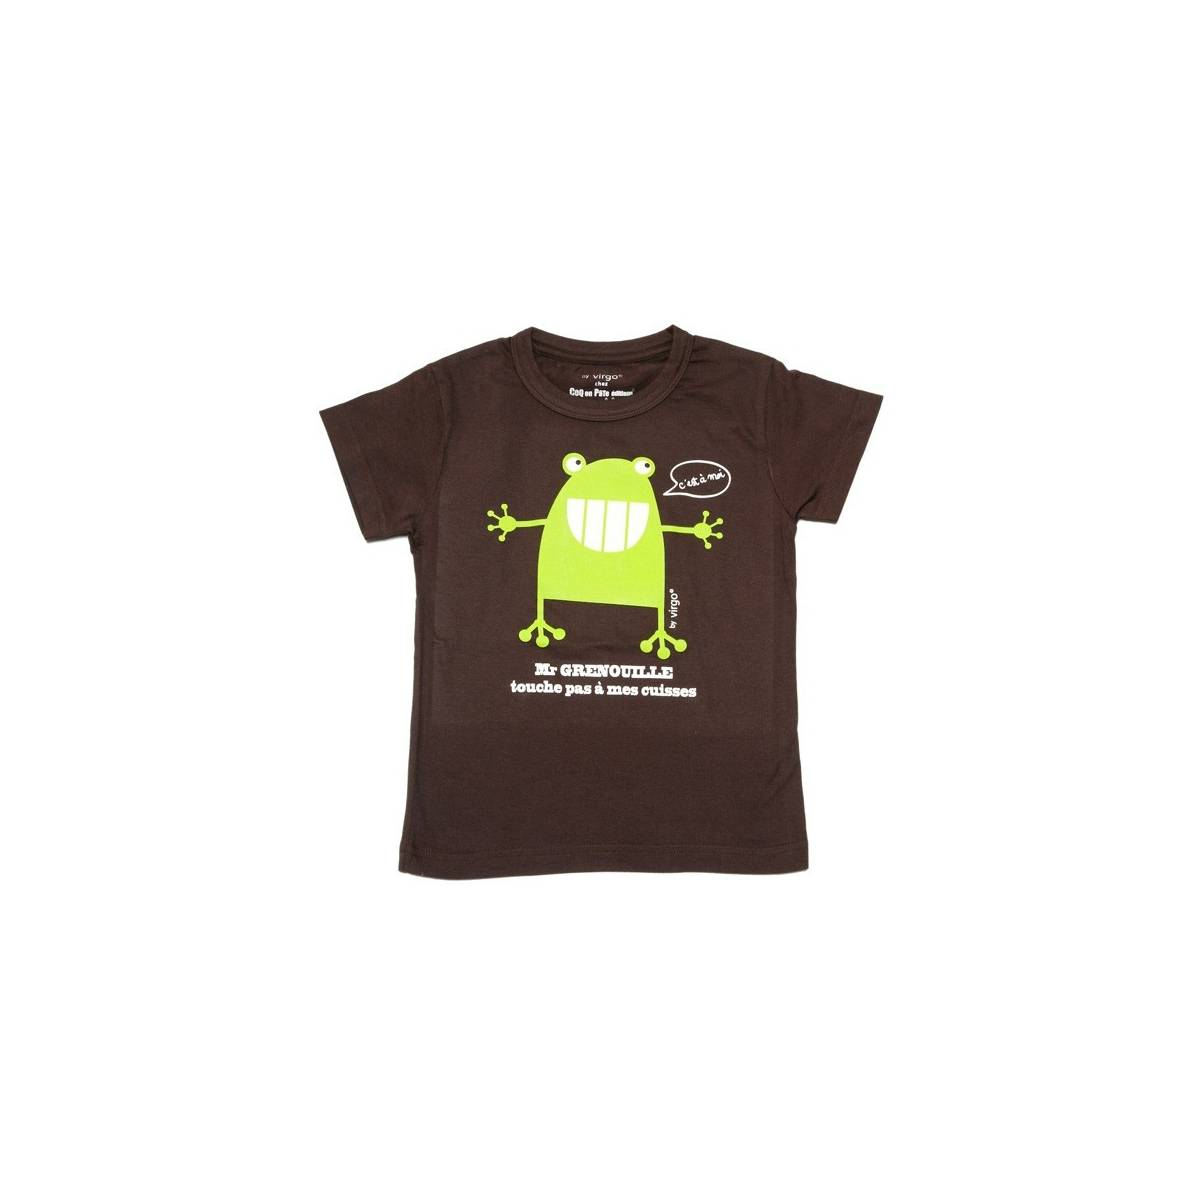 T-shirt grenouille by Virgo